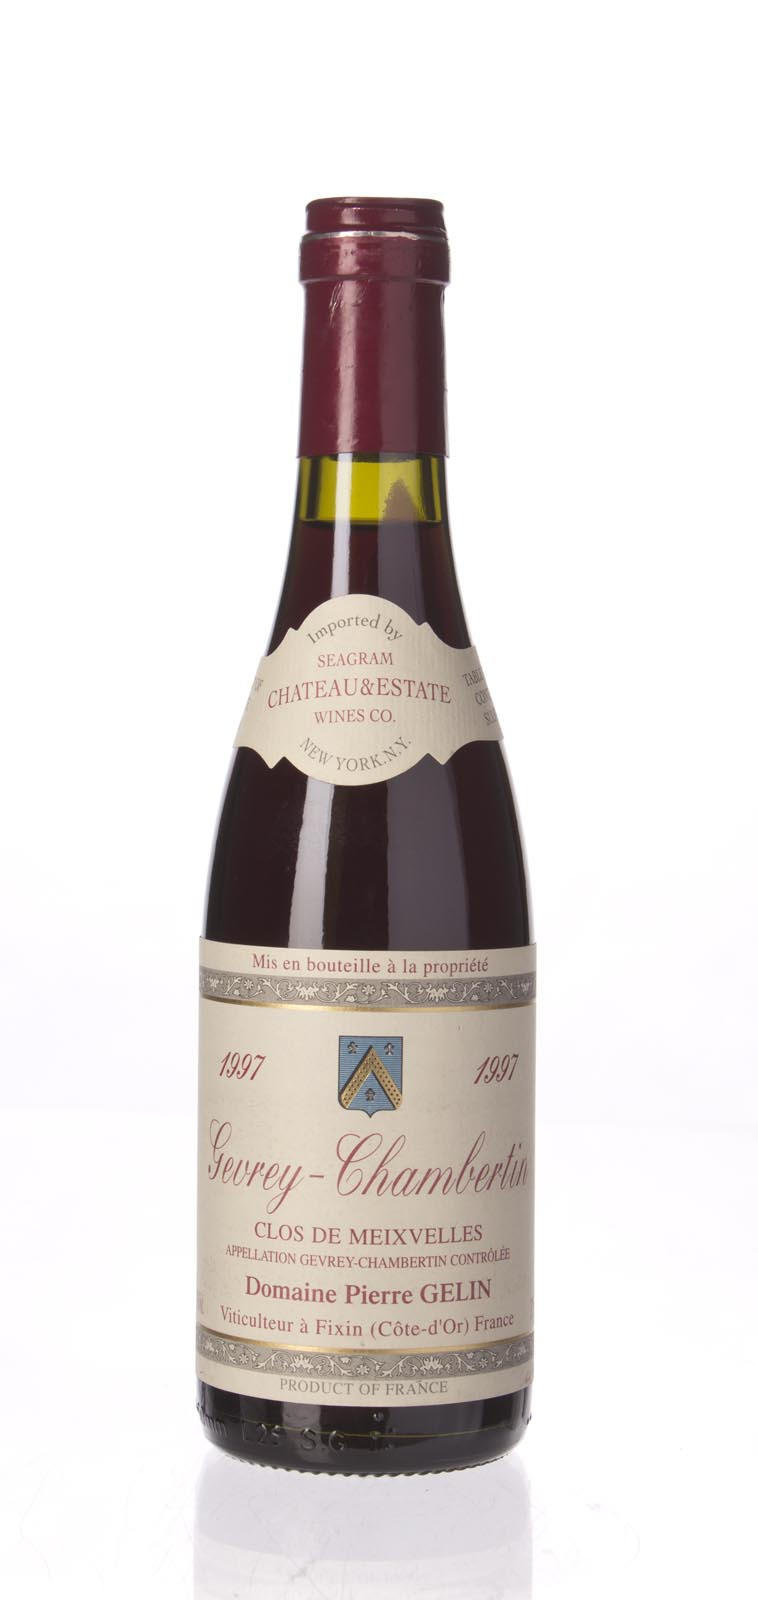 Pierre Gelin Gevrey Chambertin Clos de Meixvelles 1997, 750ml () from The BPW - Merchants of rare and fine wines.